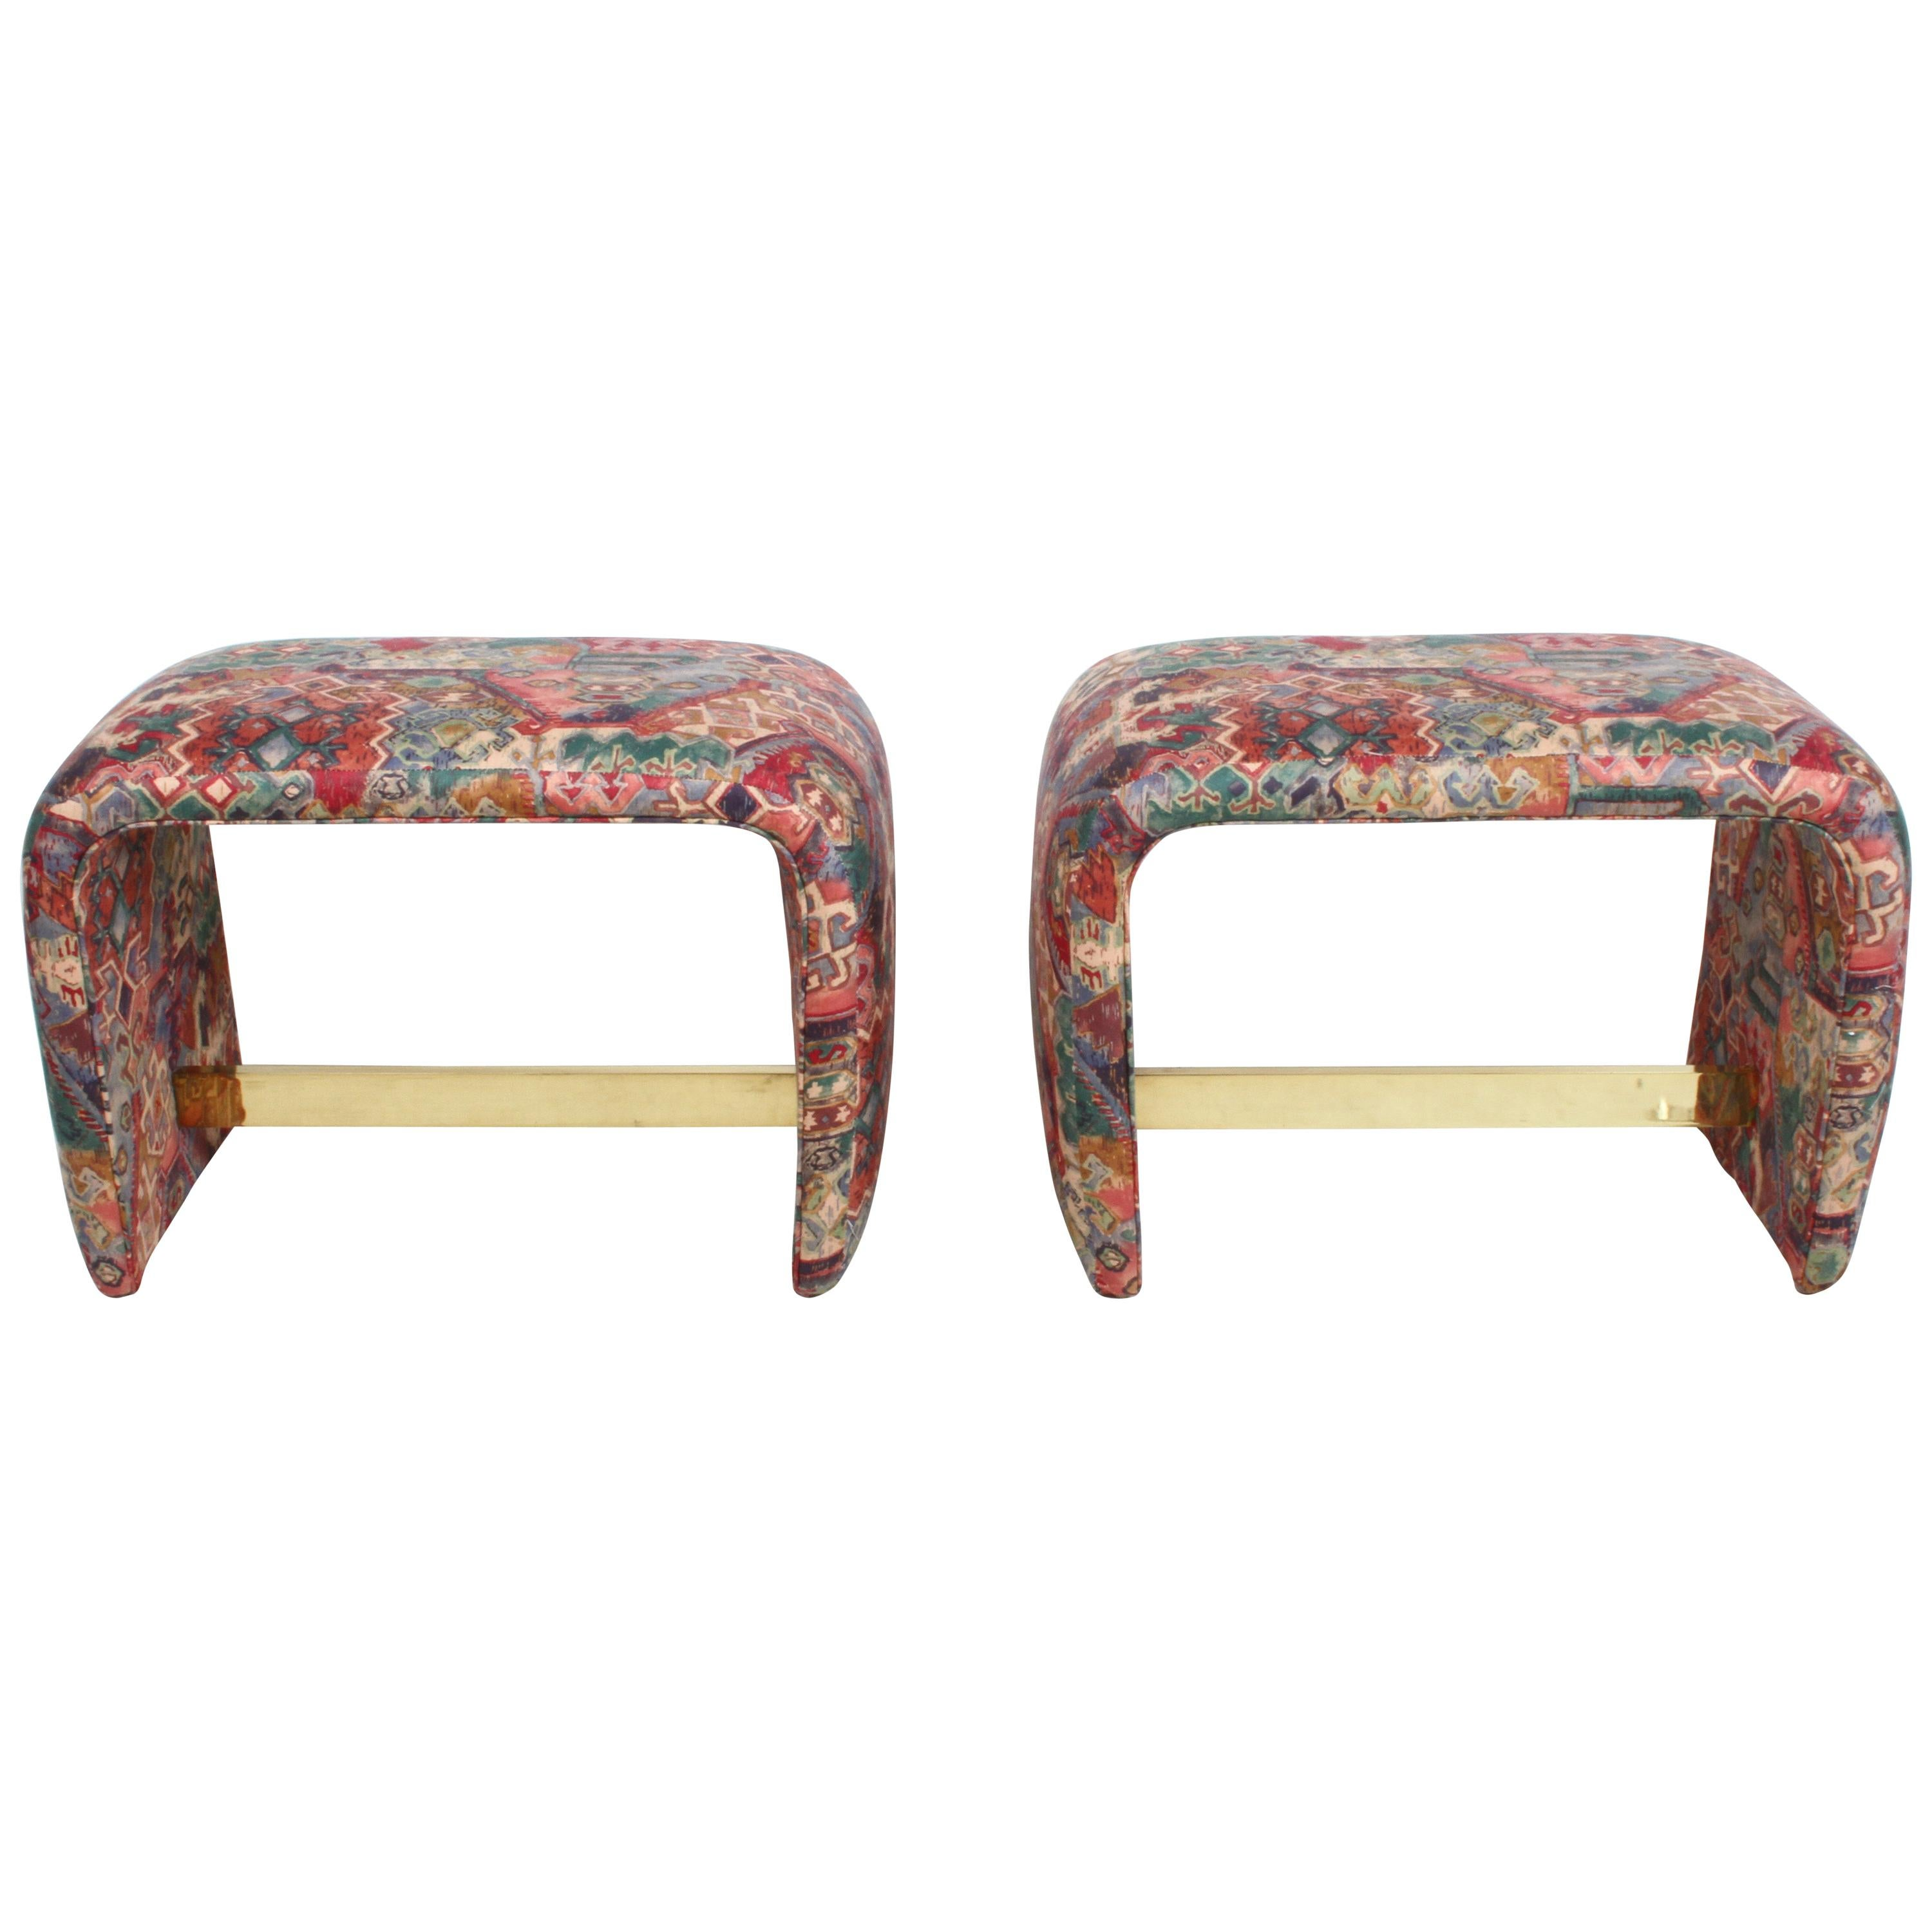 Pair of Milo Baughman for Thayer Coggin Waterfall Ottomans or Benches